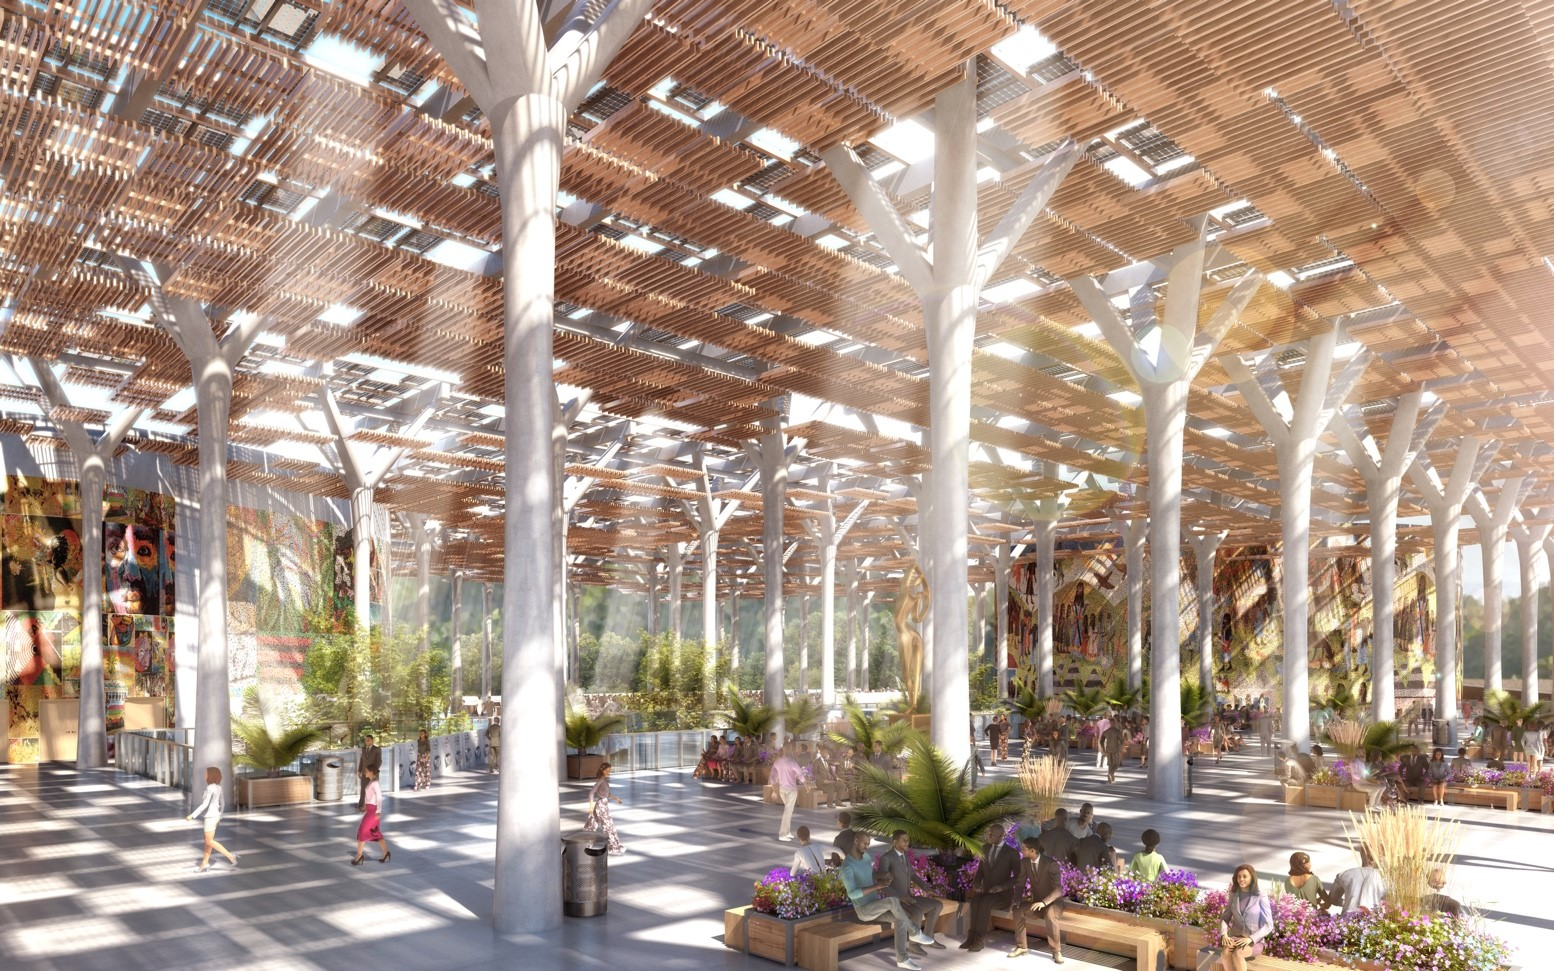 The Interior Design Is Spearheaded By Multidisciplinary Boutique Studio  Moya Design Partners. To Capture The Ever Present Breezes, Tree Groves, ...